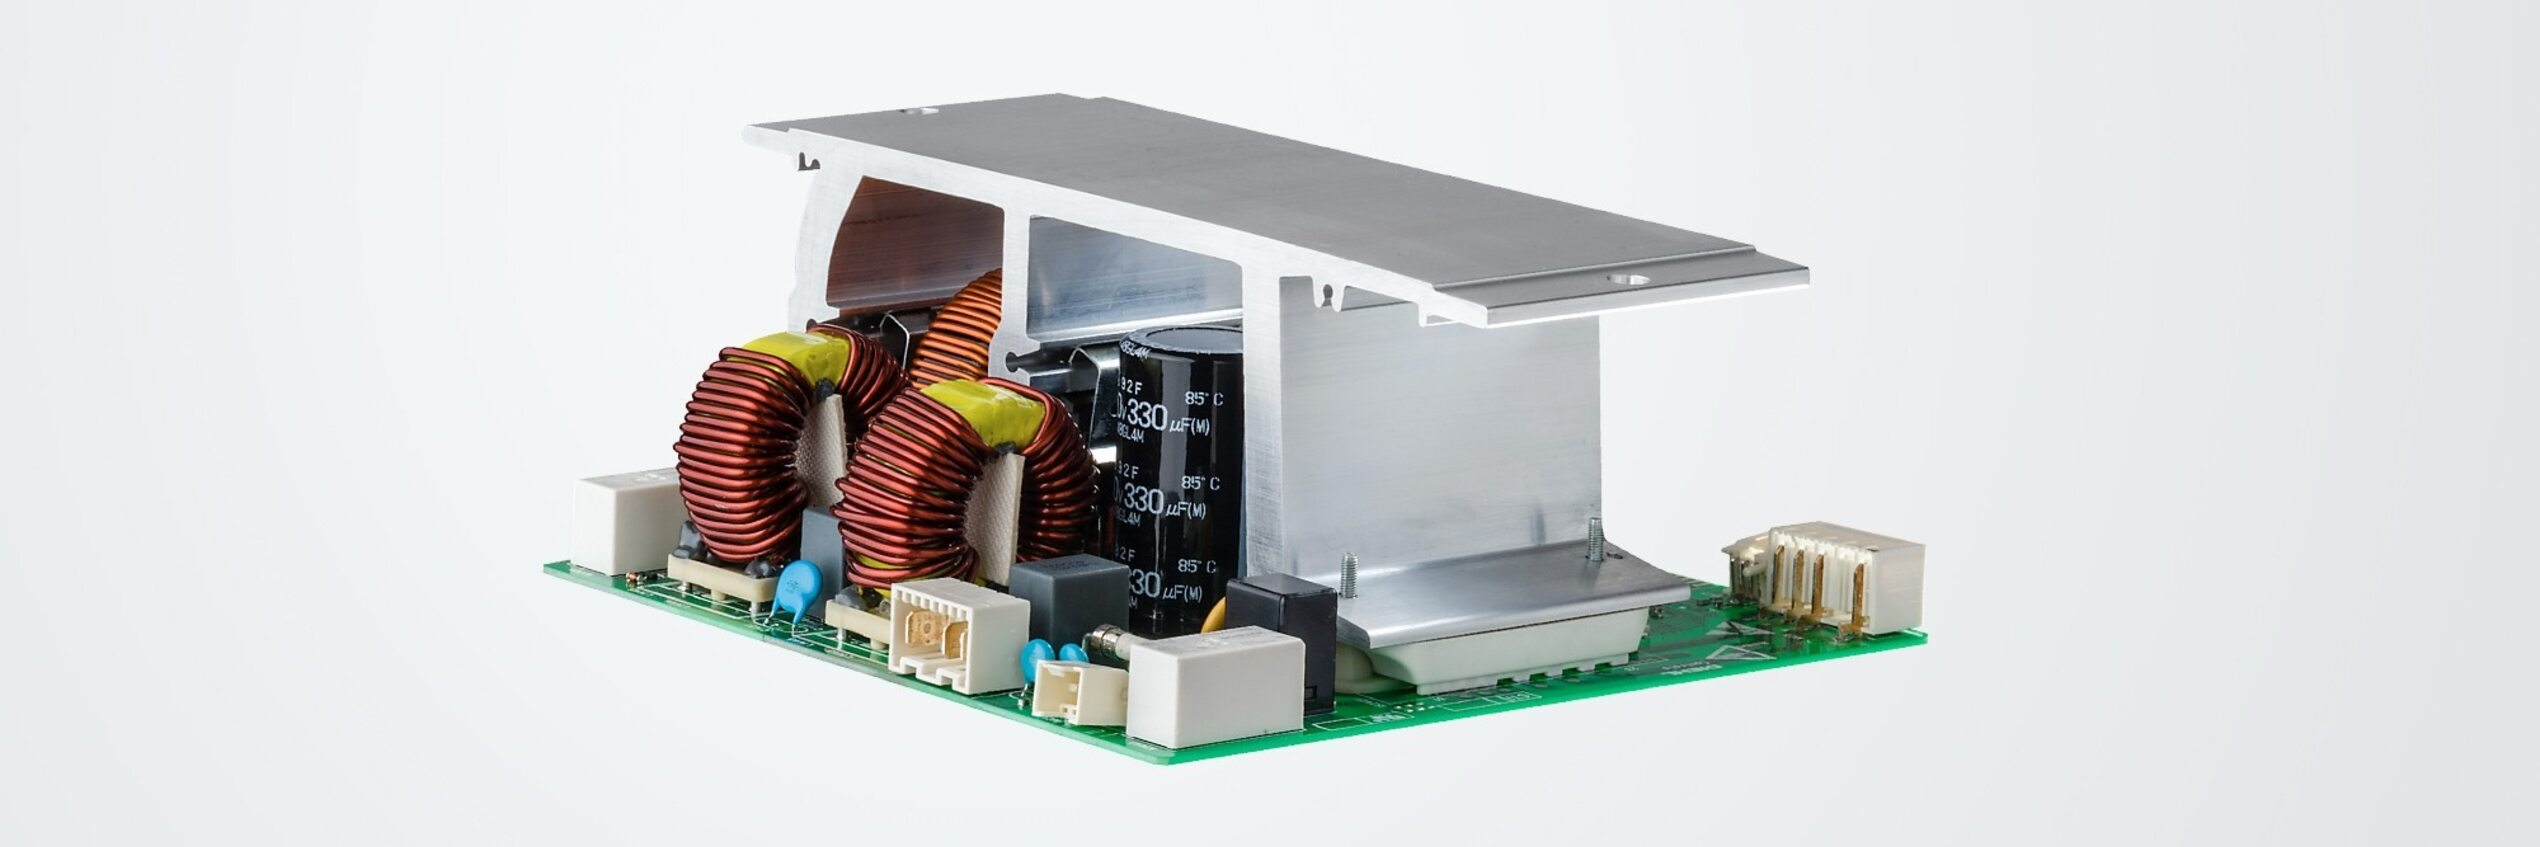 Inverter for pump control with active PFC